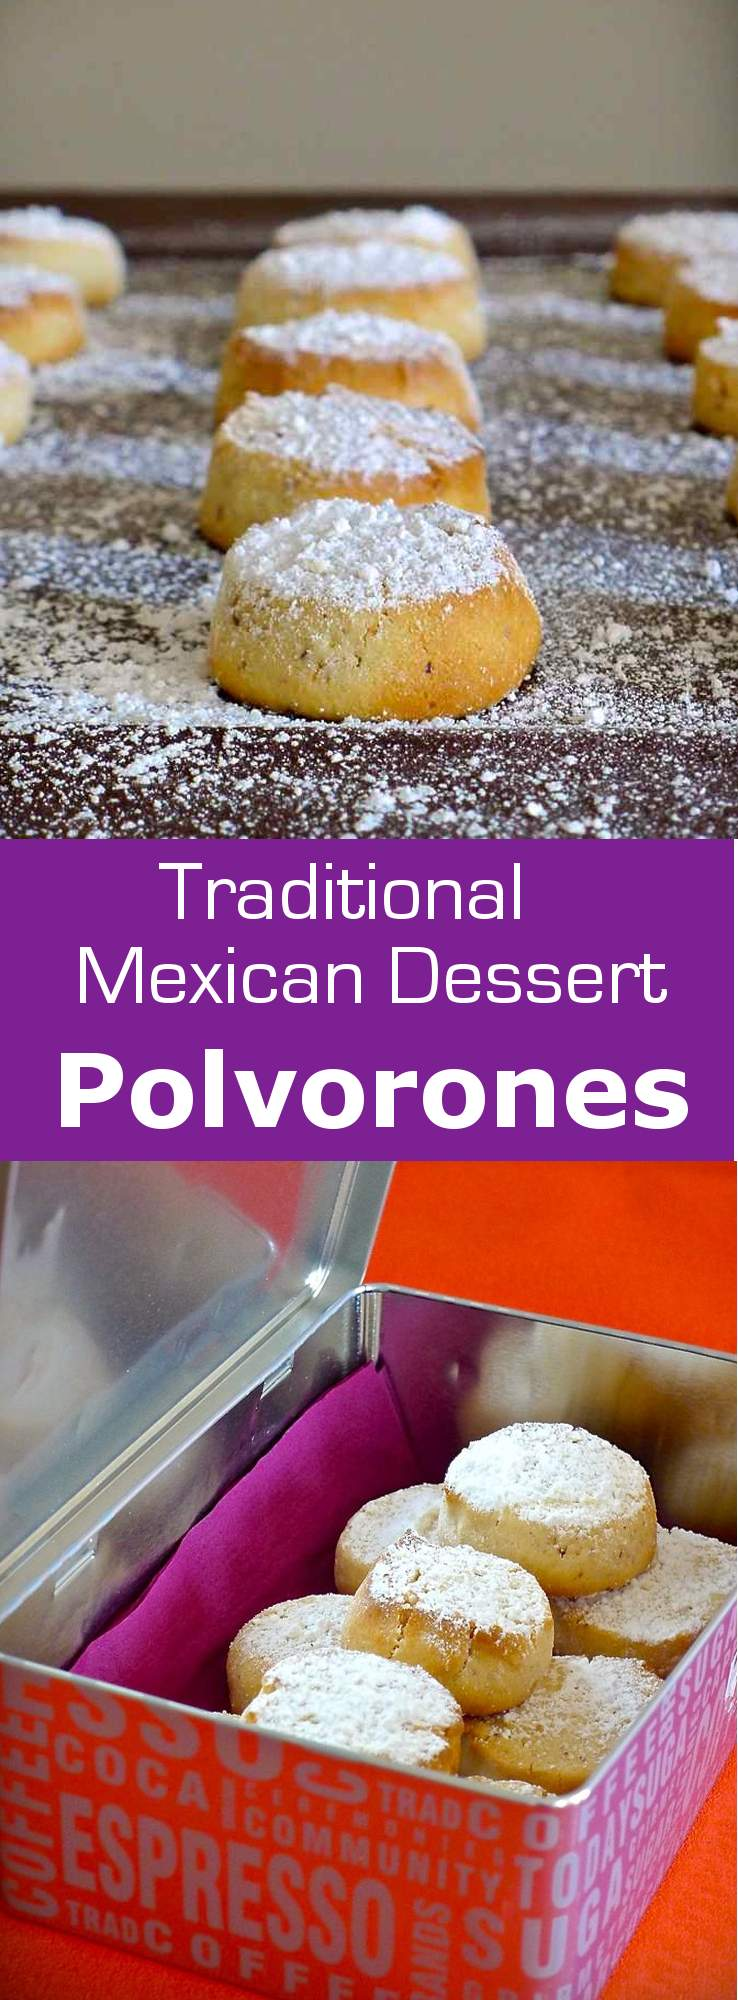 Polvorones take their name from the Spanish word polvo which translates to powder. They were introduced to Mexico by Spanish settlers. #dessert #cookie #Mexico #196flavors